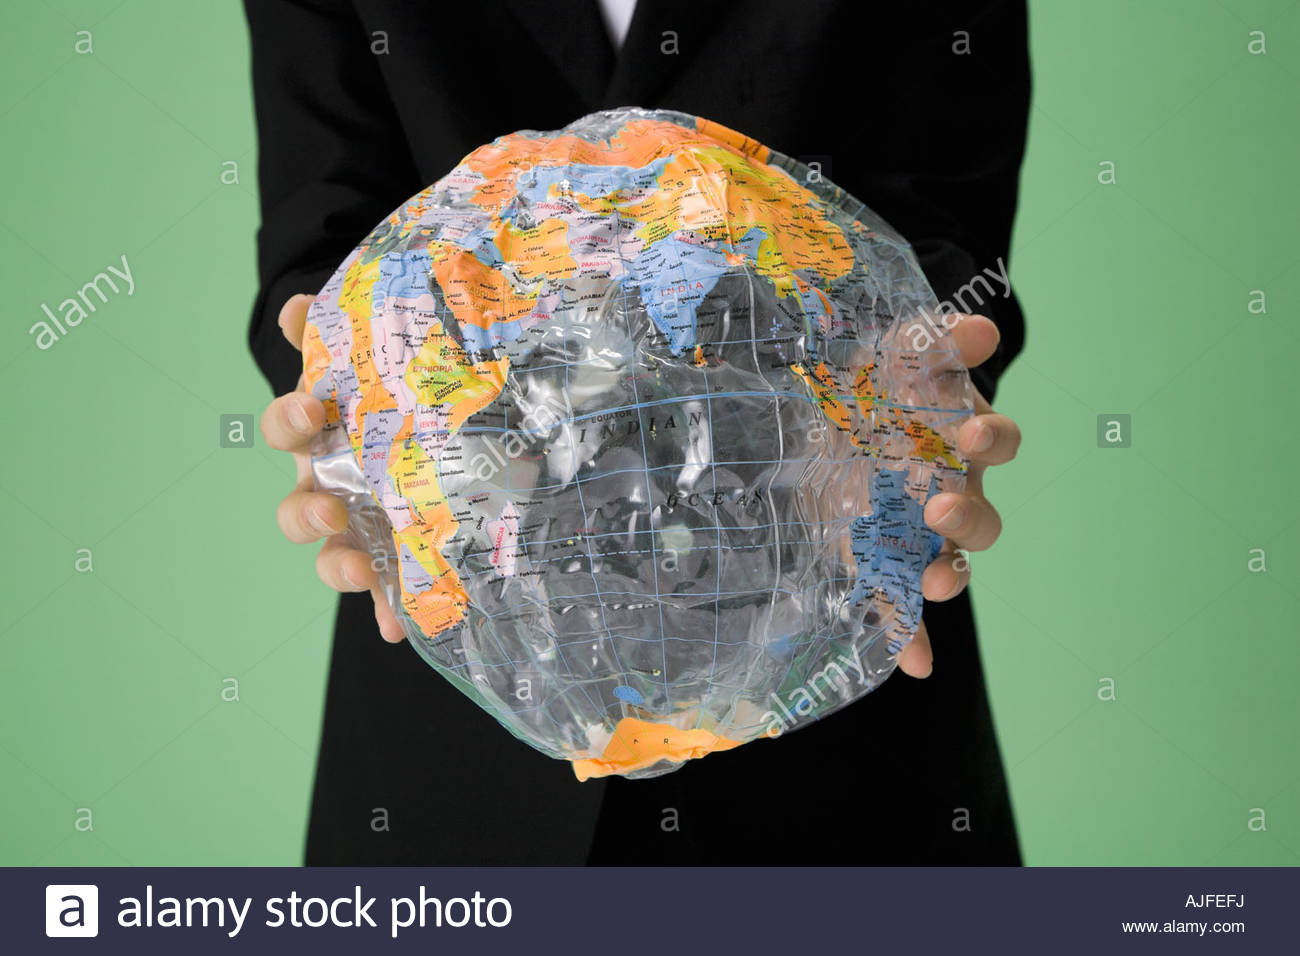 Person holding a deflated globe - Stock Image